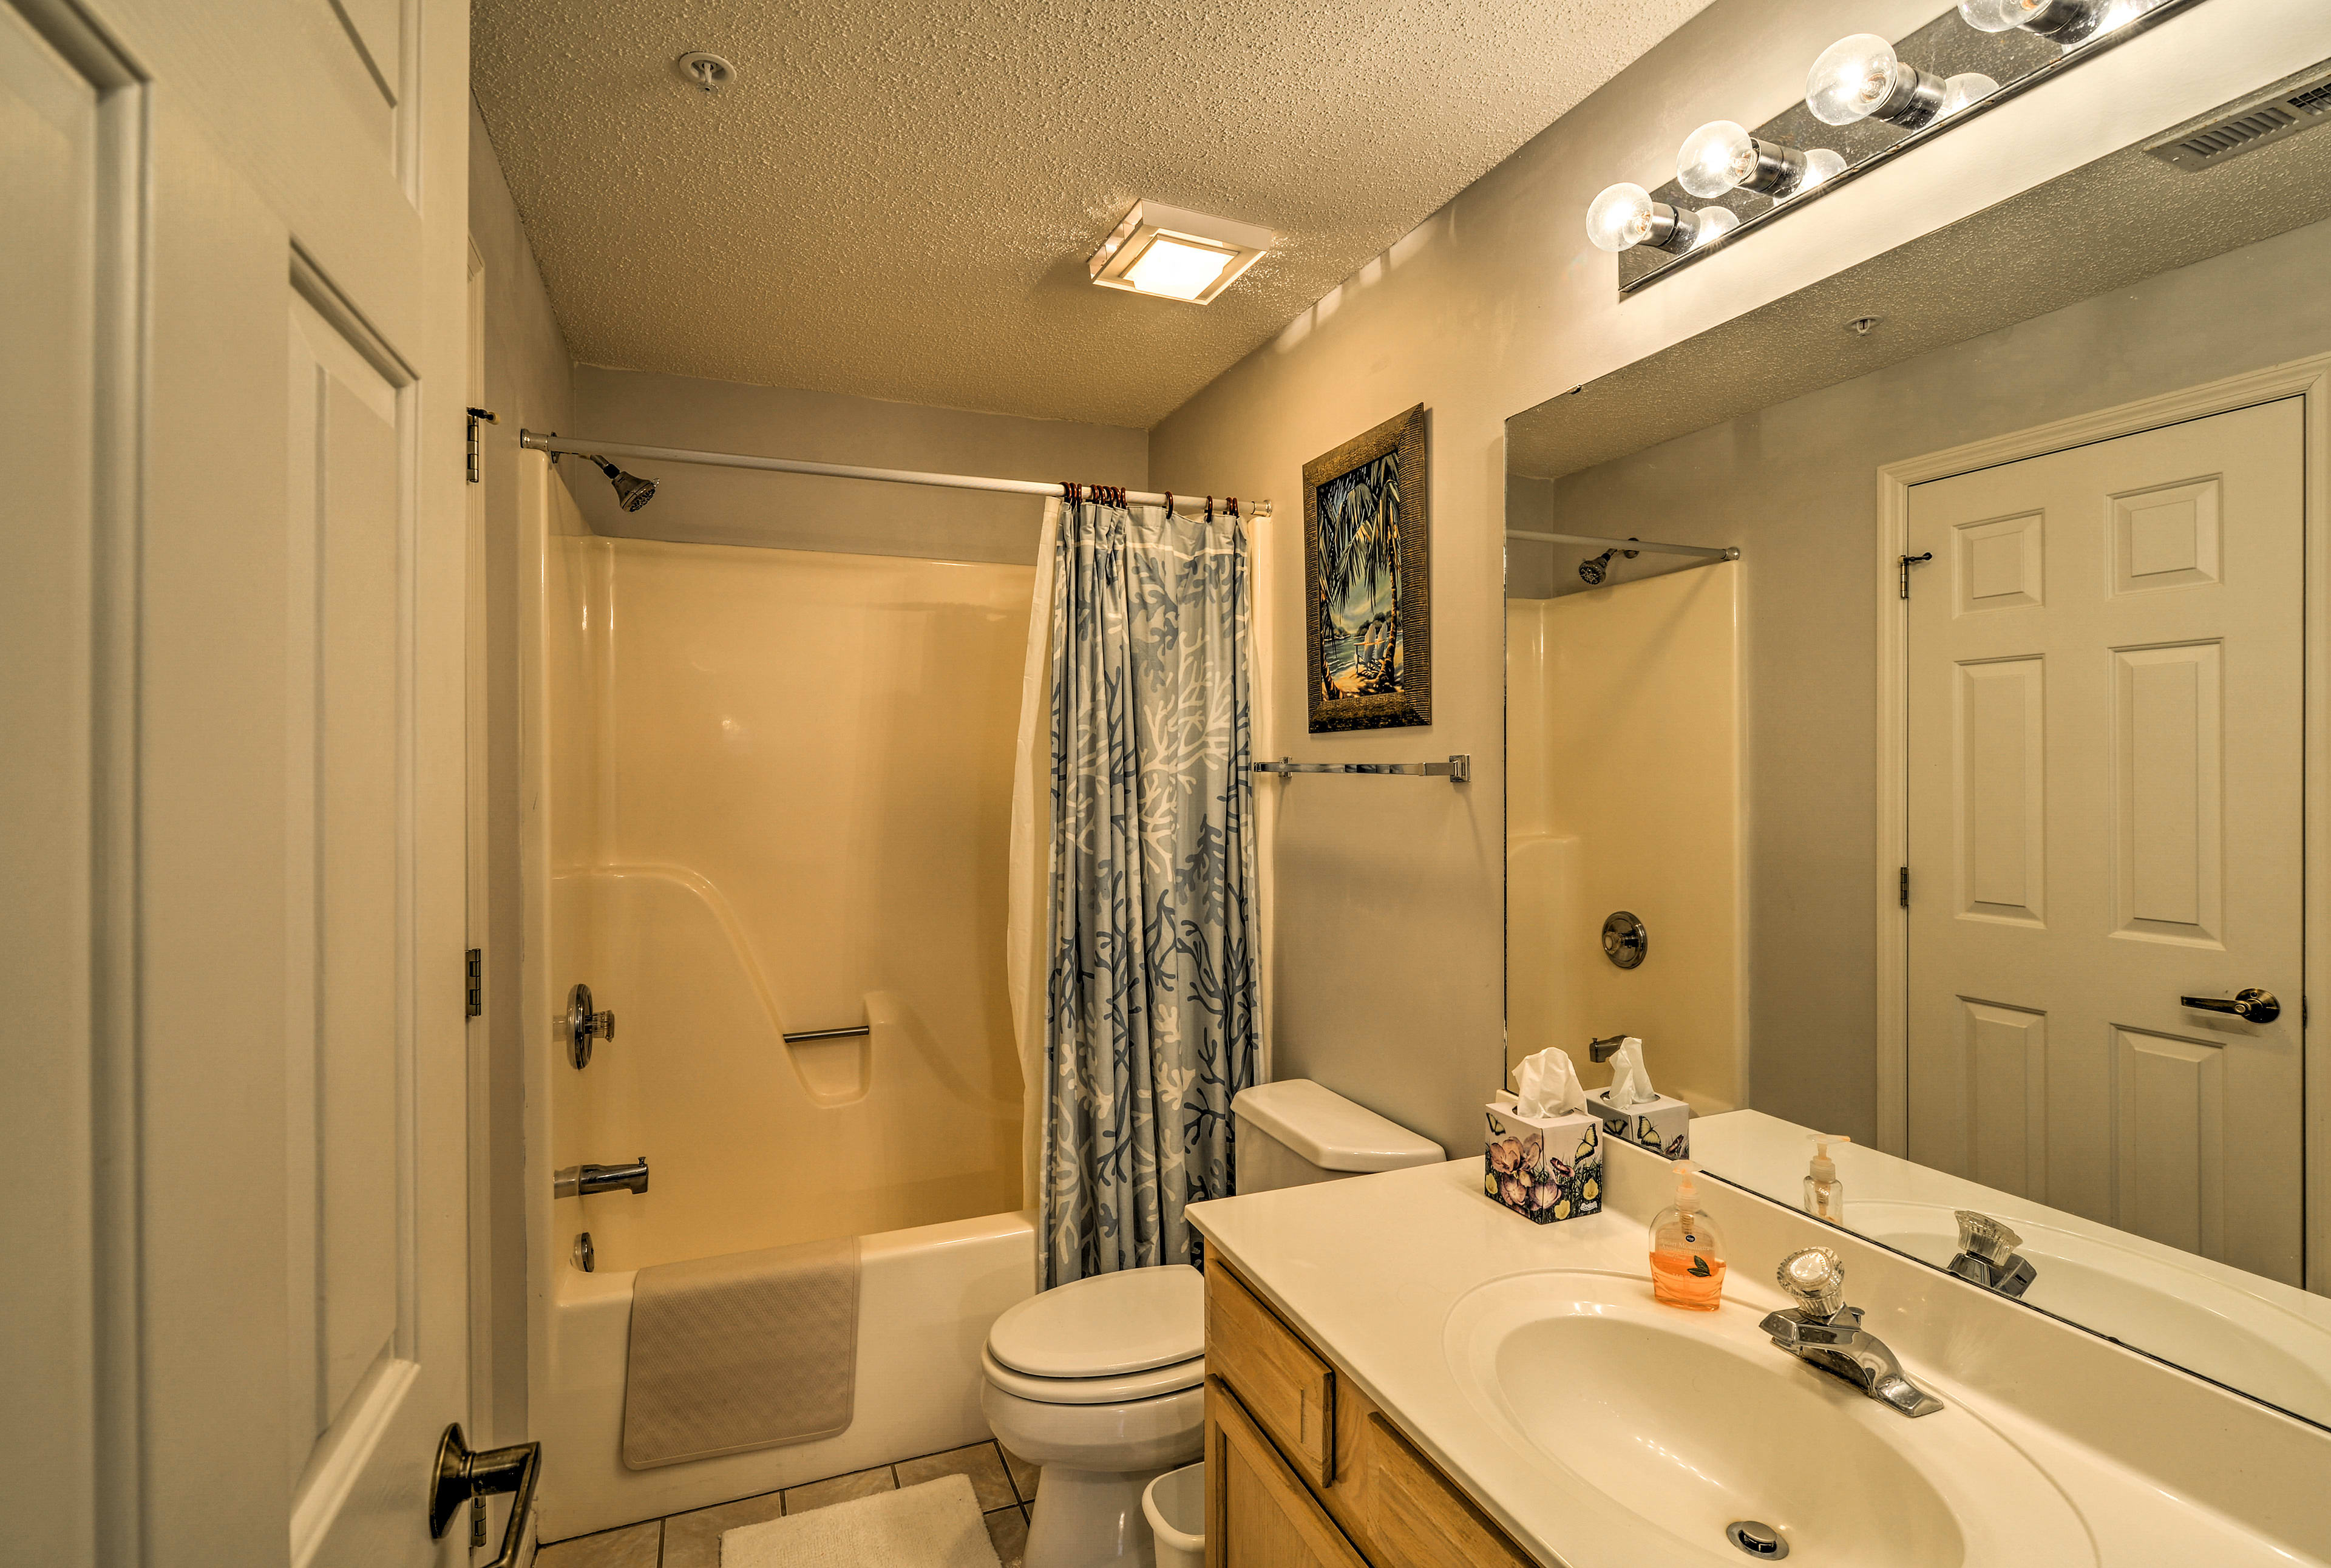 Get ready for daily adventures in this full bathroom.